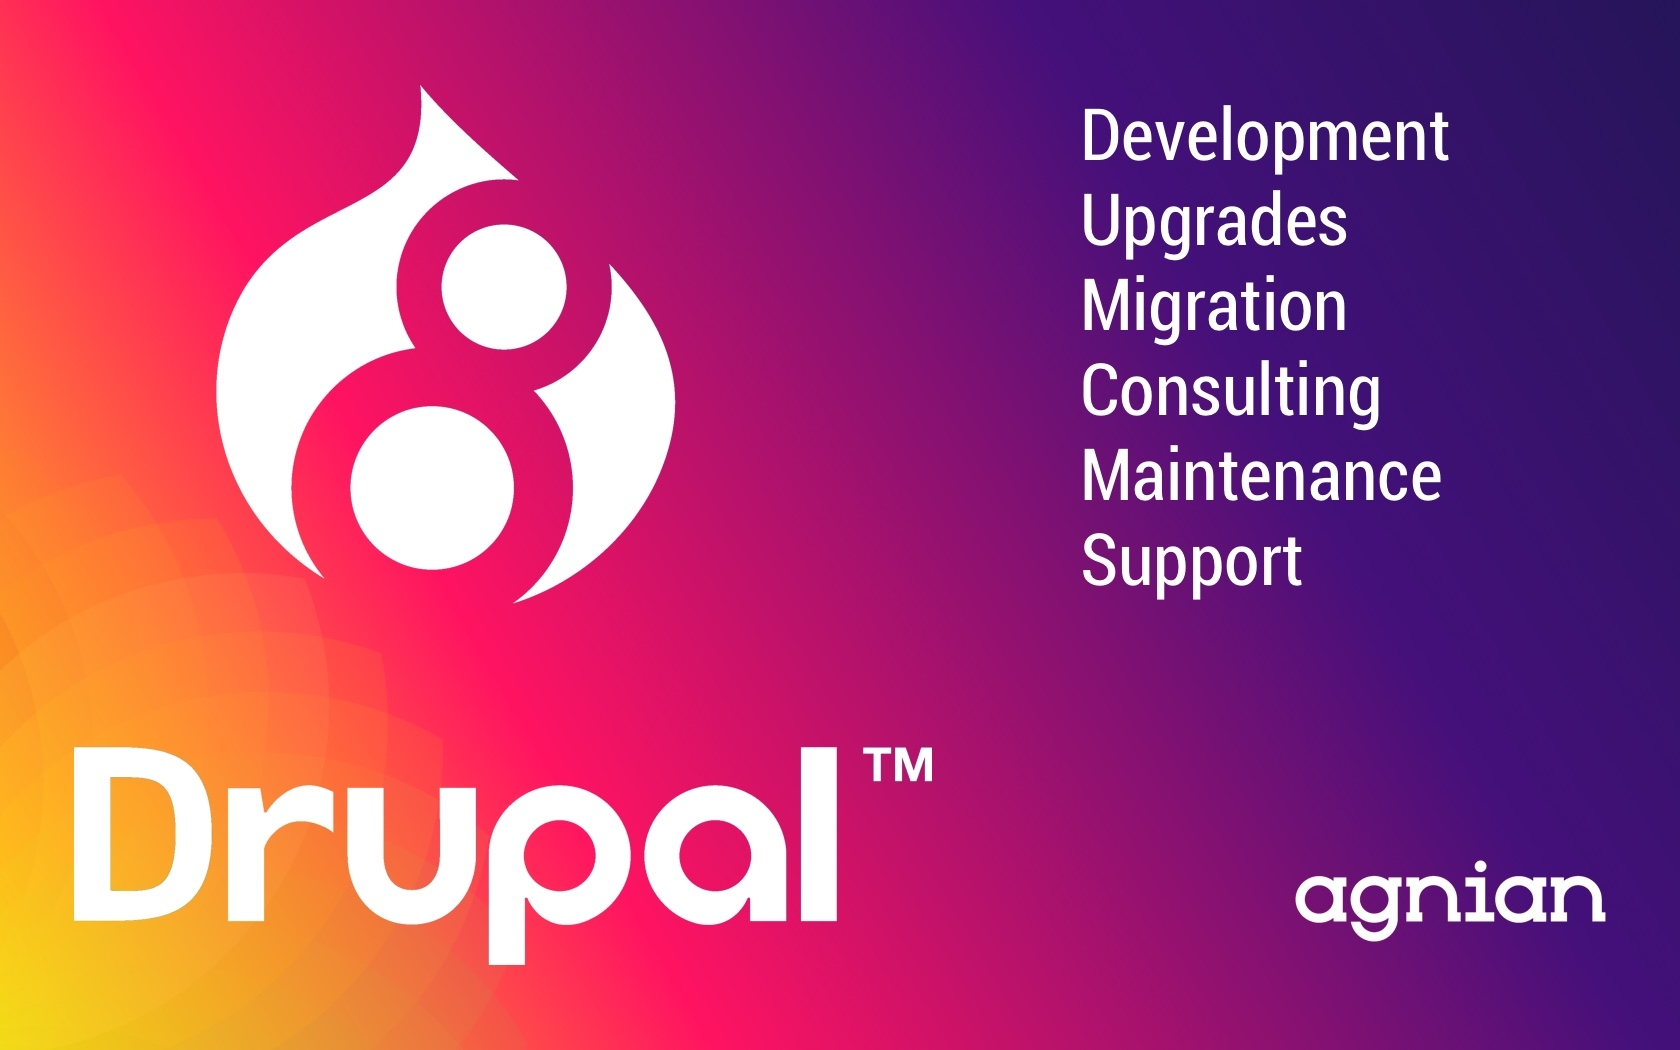 Agnian Drupal 8 Development, Consulting and Maintenance